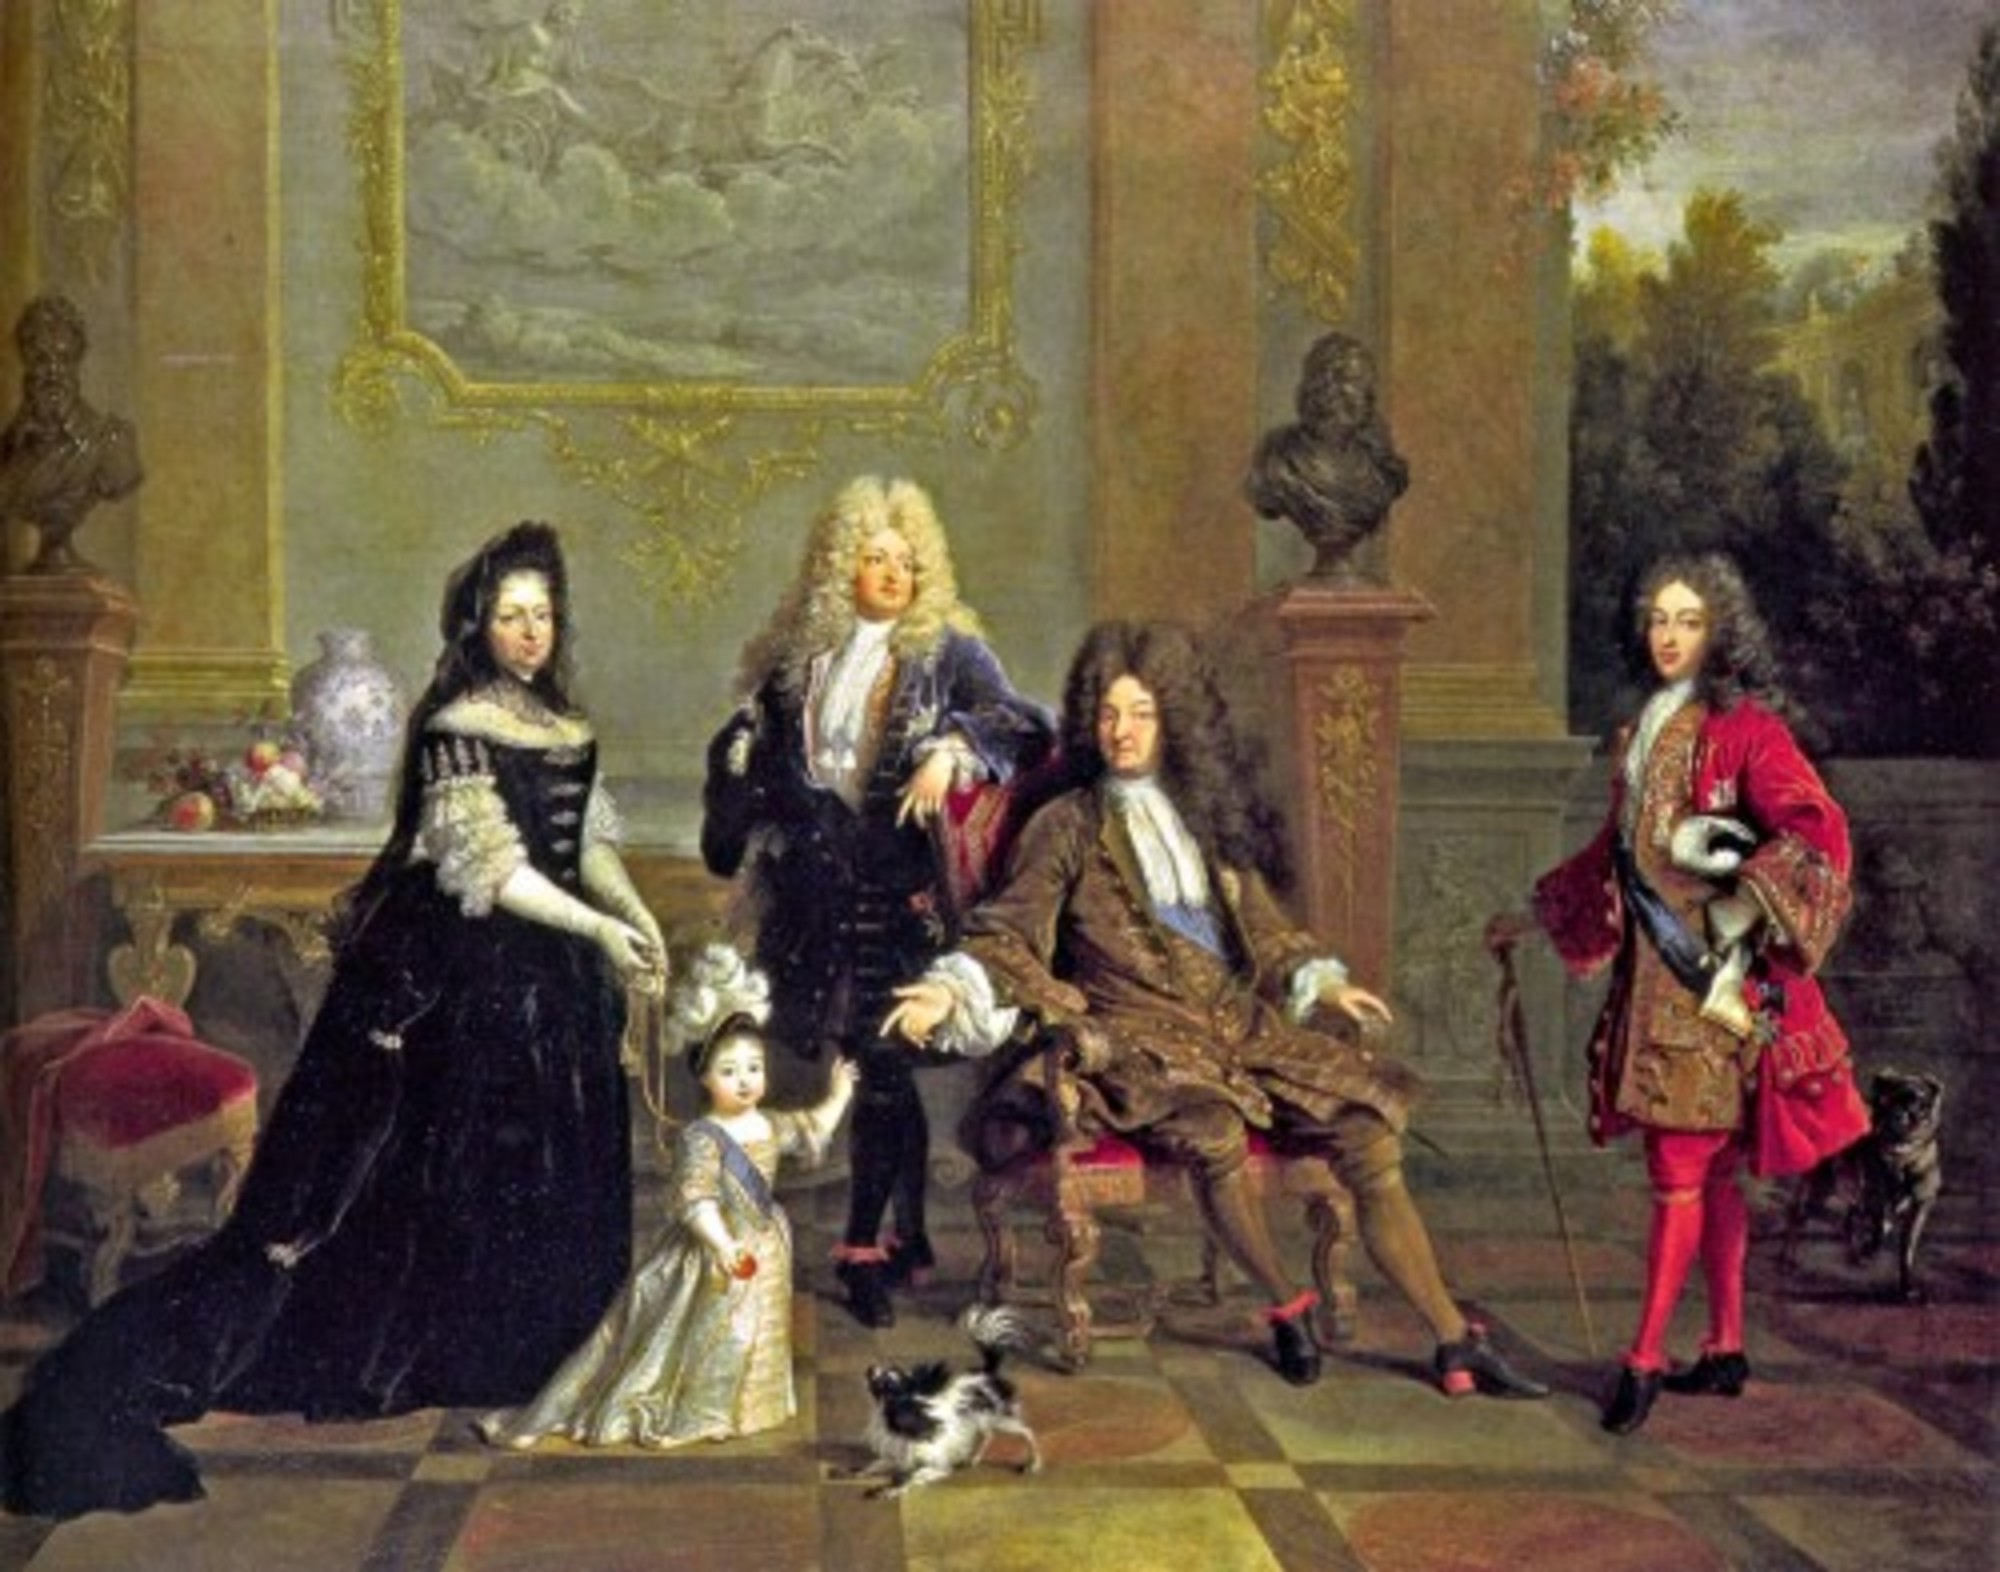 Louis-XIV-of-France-and-his-family-attributed-to-Nicolas-de-Largilliere.jpg